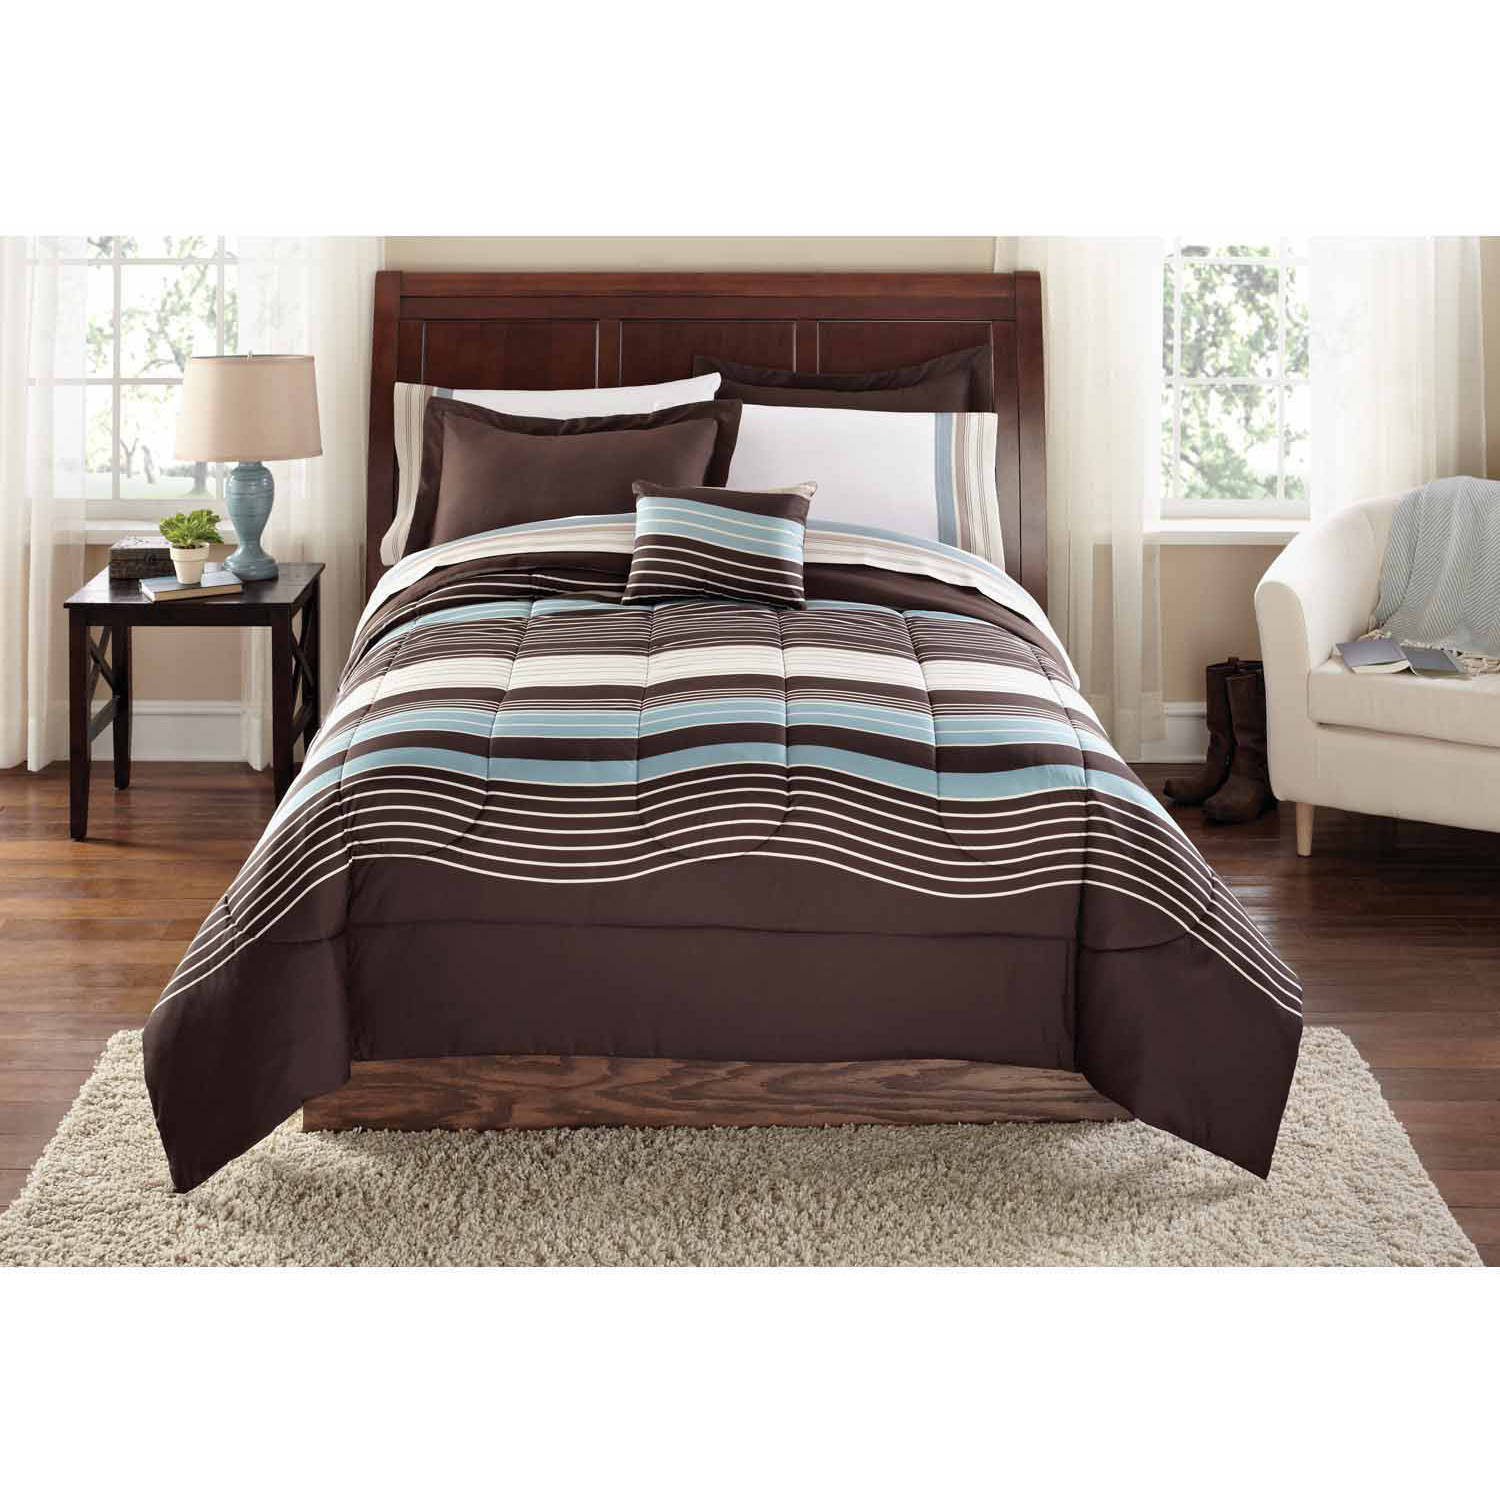 Beau Mainstays Ombre Coordinated Bedding Set With Bedskirt Bed In A Bag    Walmart.com